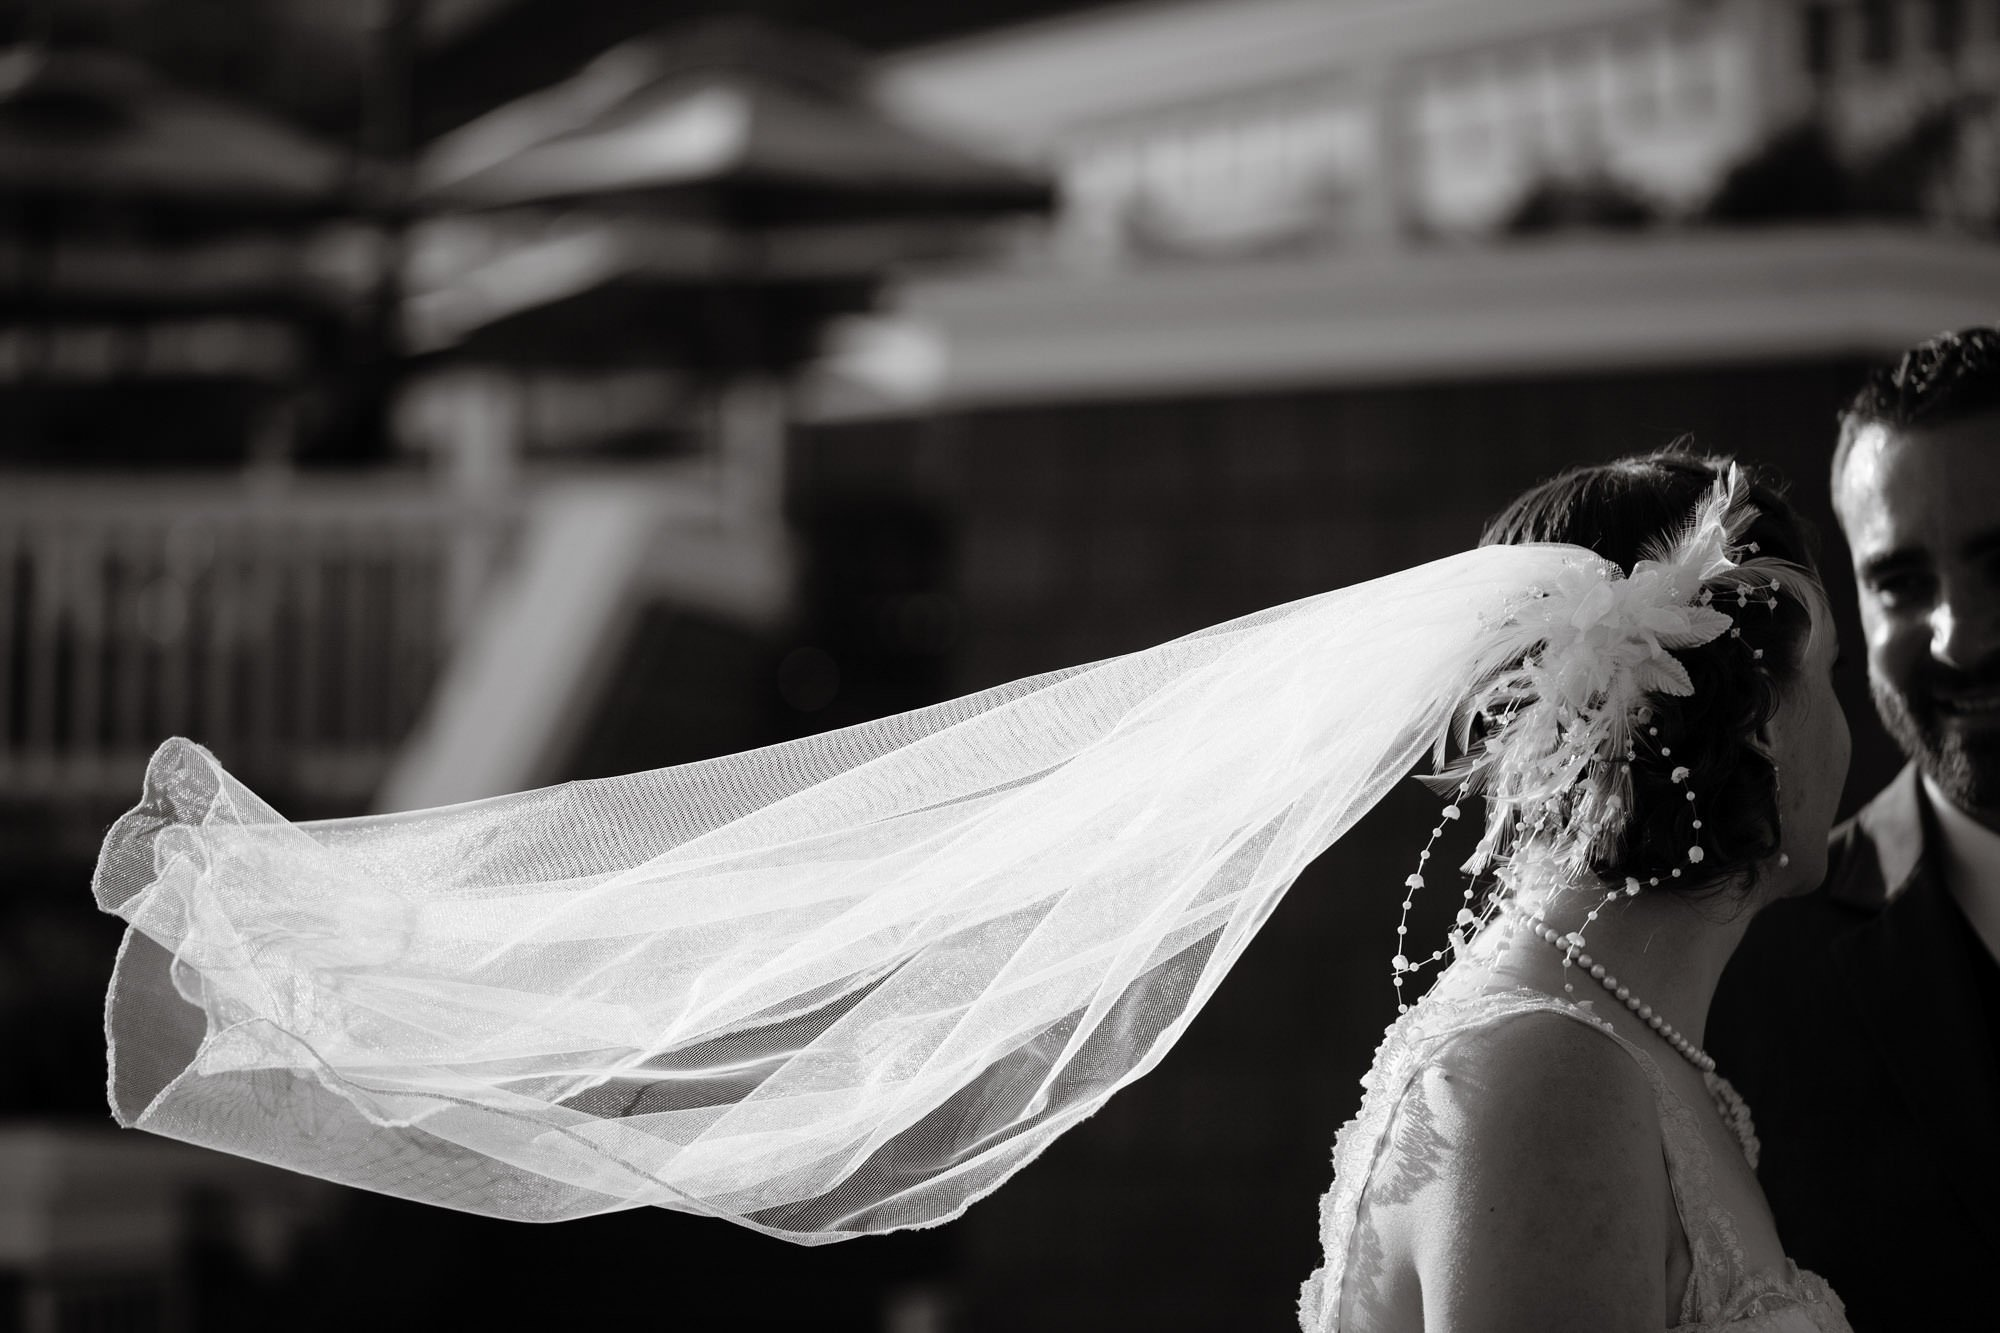 The bride's veil blows in the wind in Alexandria before the wedding ceremony at Topedo Factory.